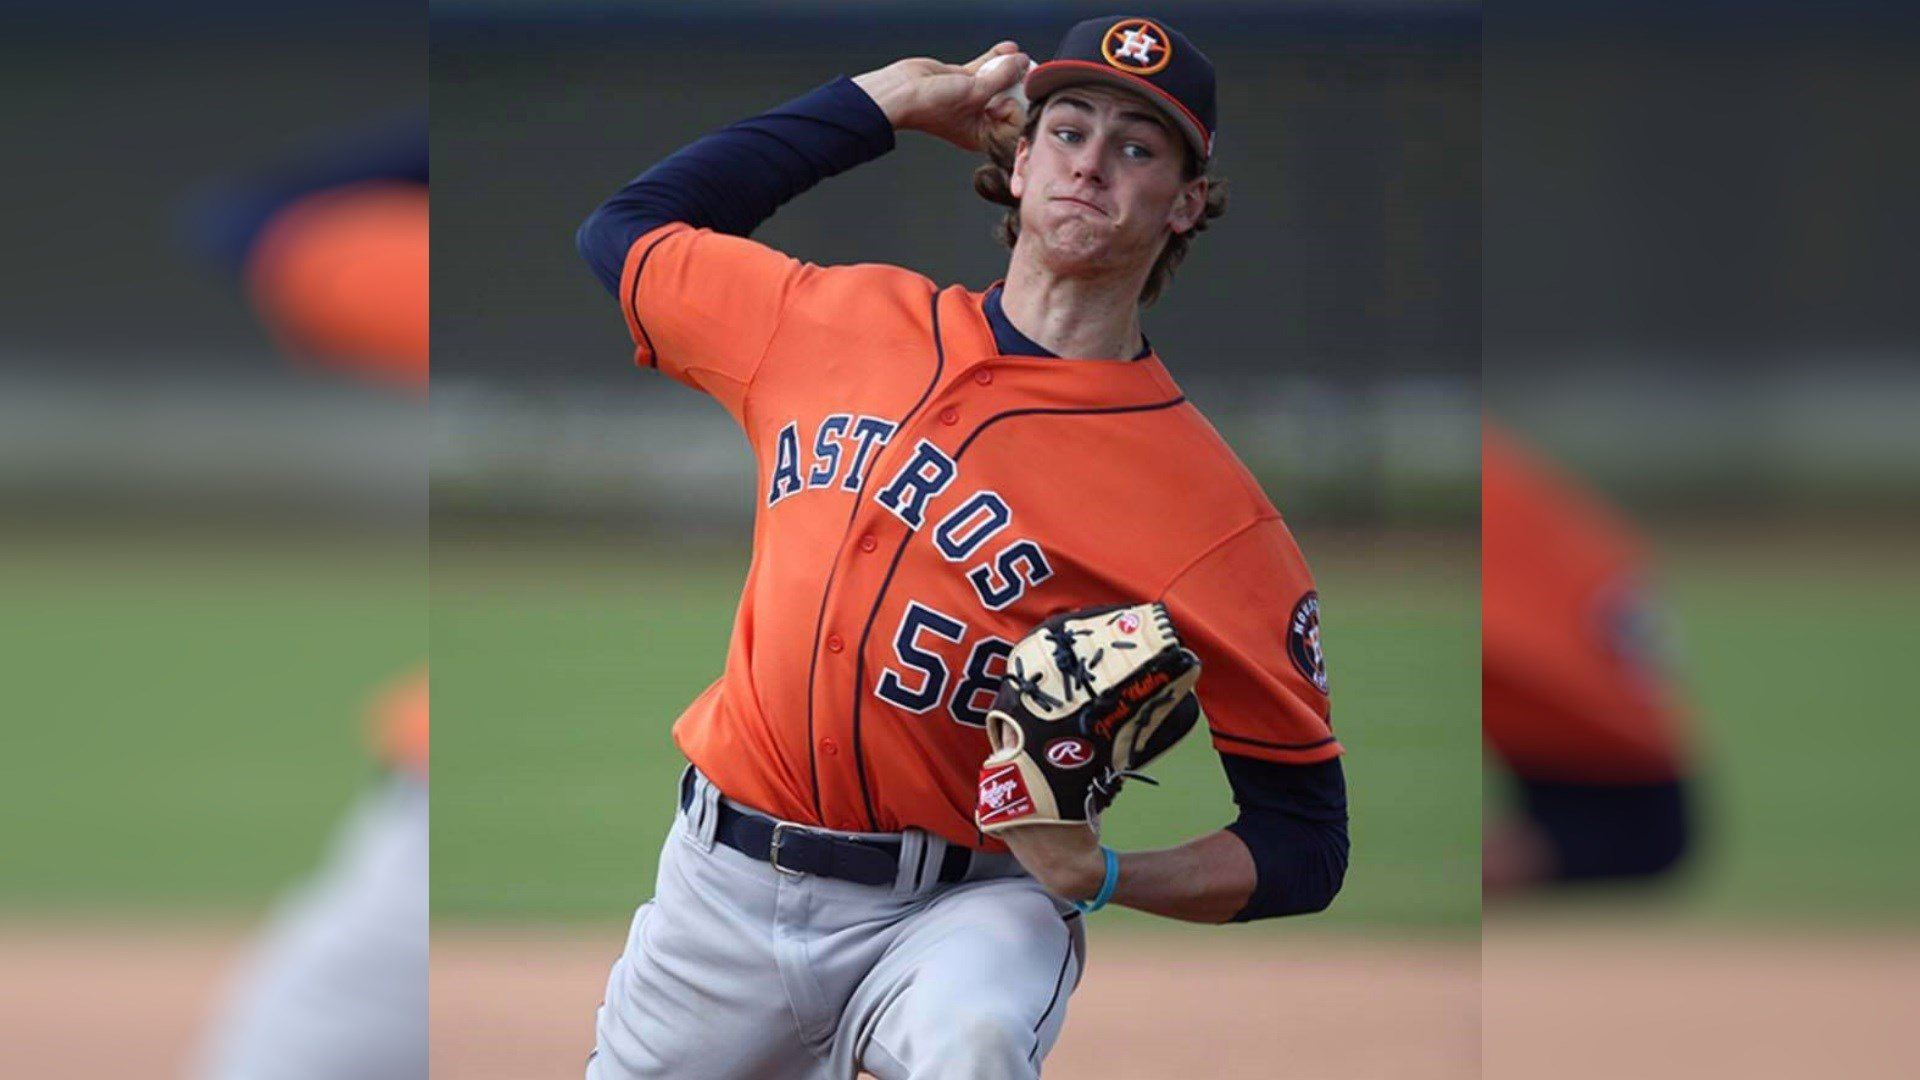 Astros pitching prospect Whitley suspended 50 games for PED violation